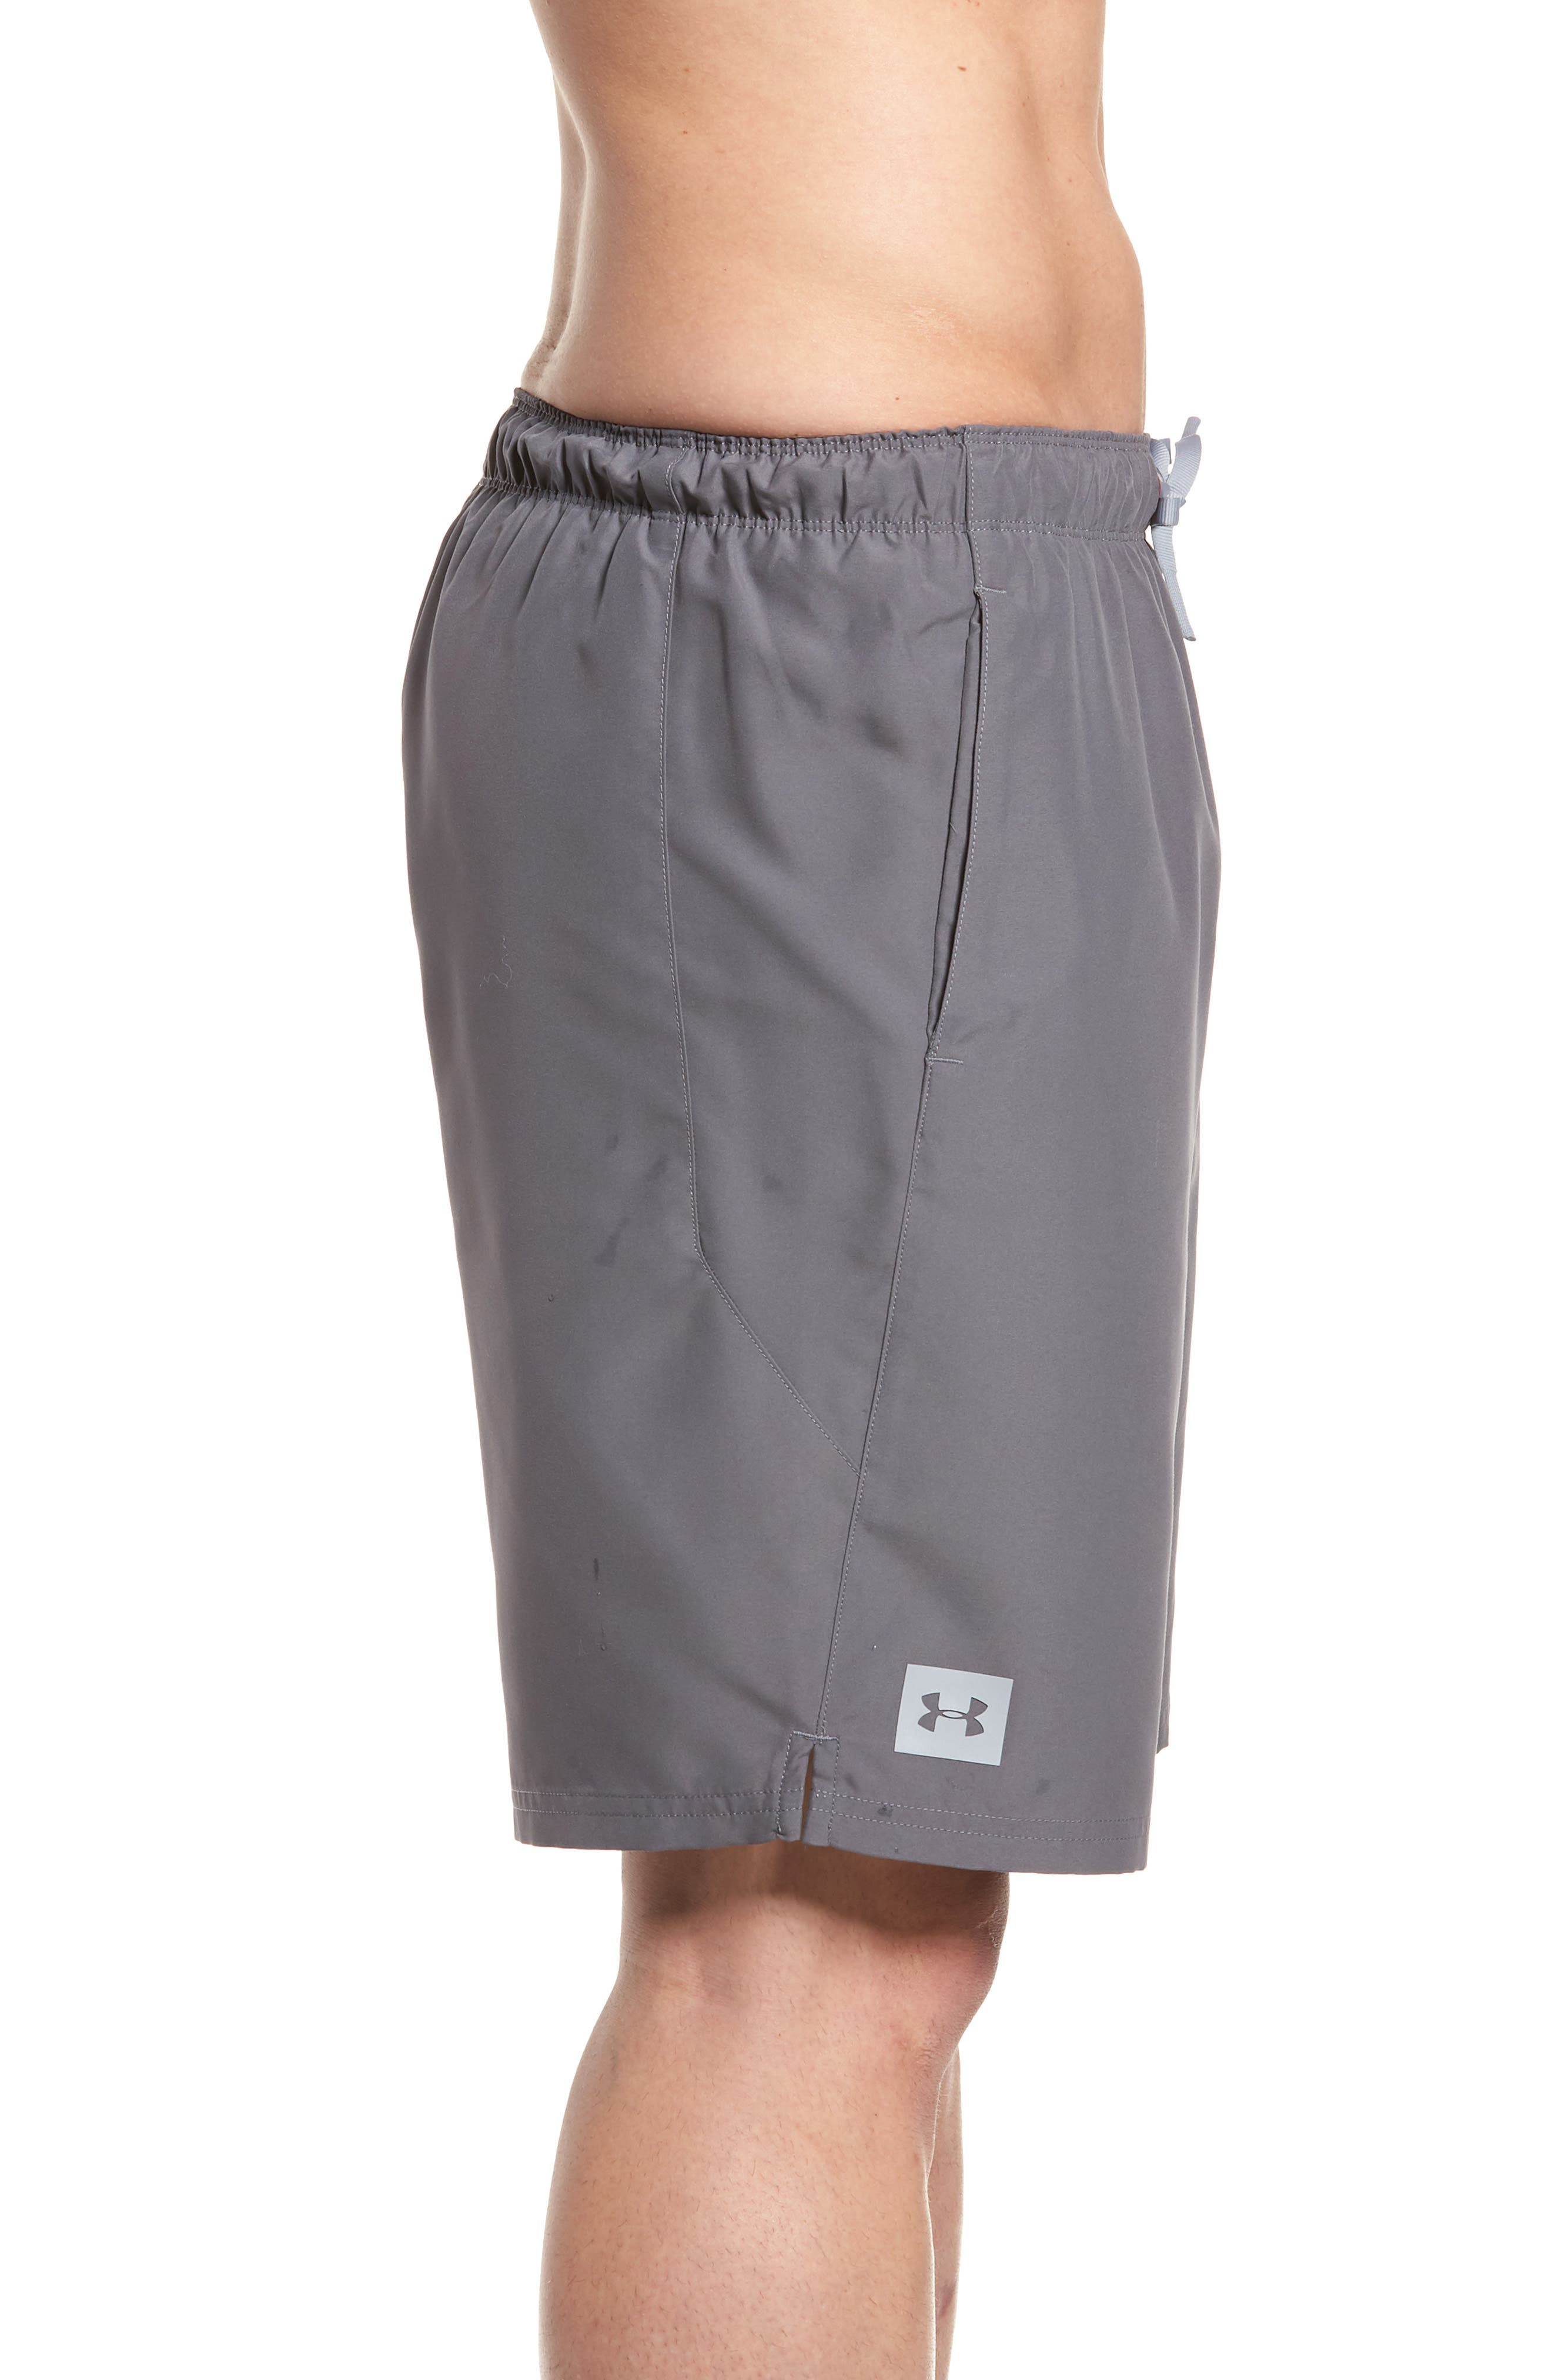 Mania Athletic Shorts,                             Alternate thumbnail 3, color,                             Graphite / Pierce / Grey